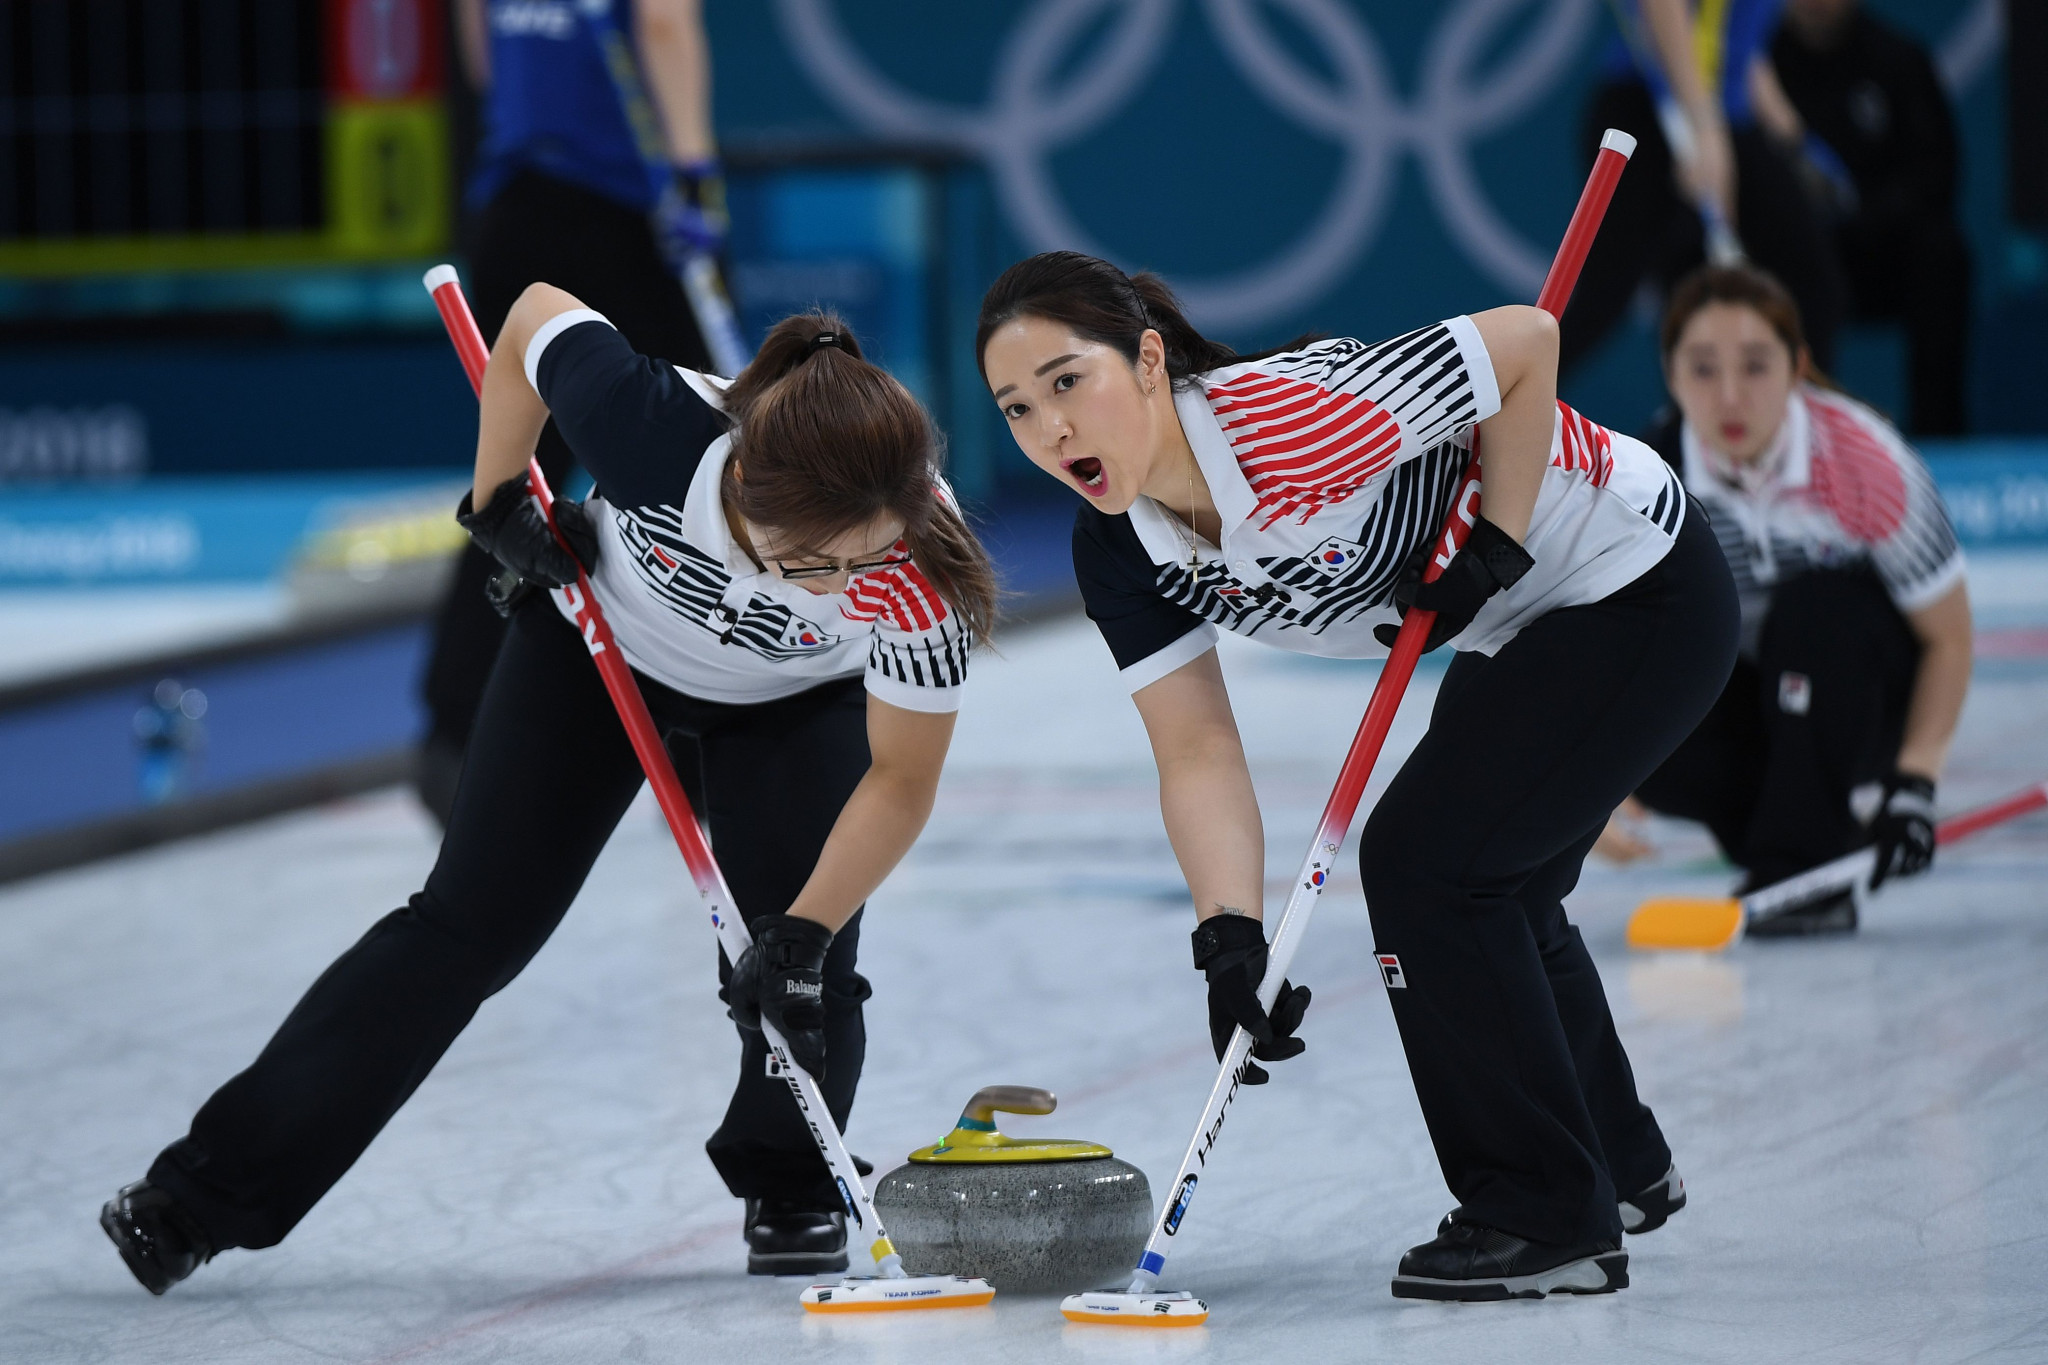 The curling proved very popular at the Pyeongchang Winter Olympics earlier this year, with the South Korean women eventually claiming the silver medal ©Getty Images